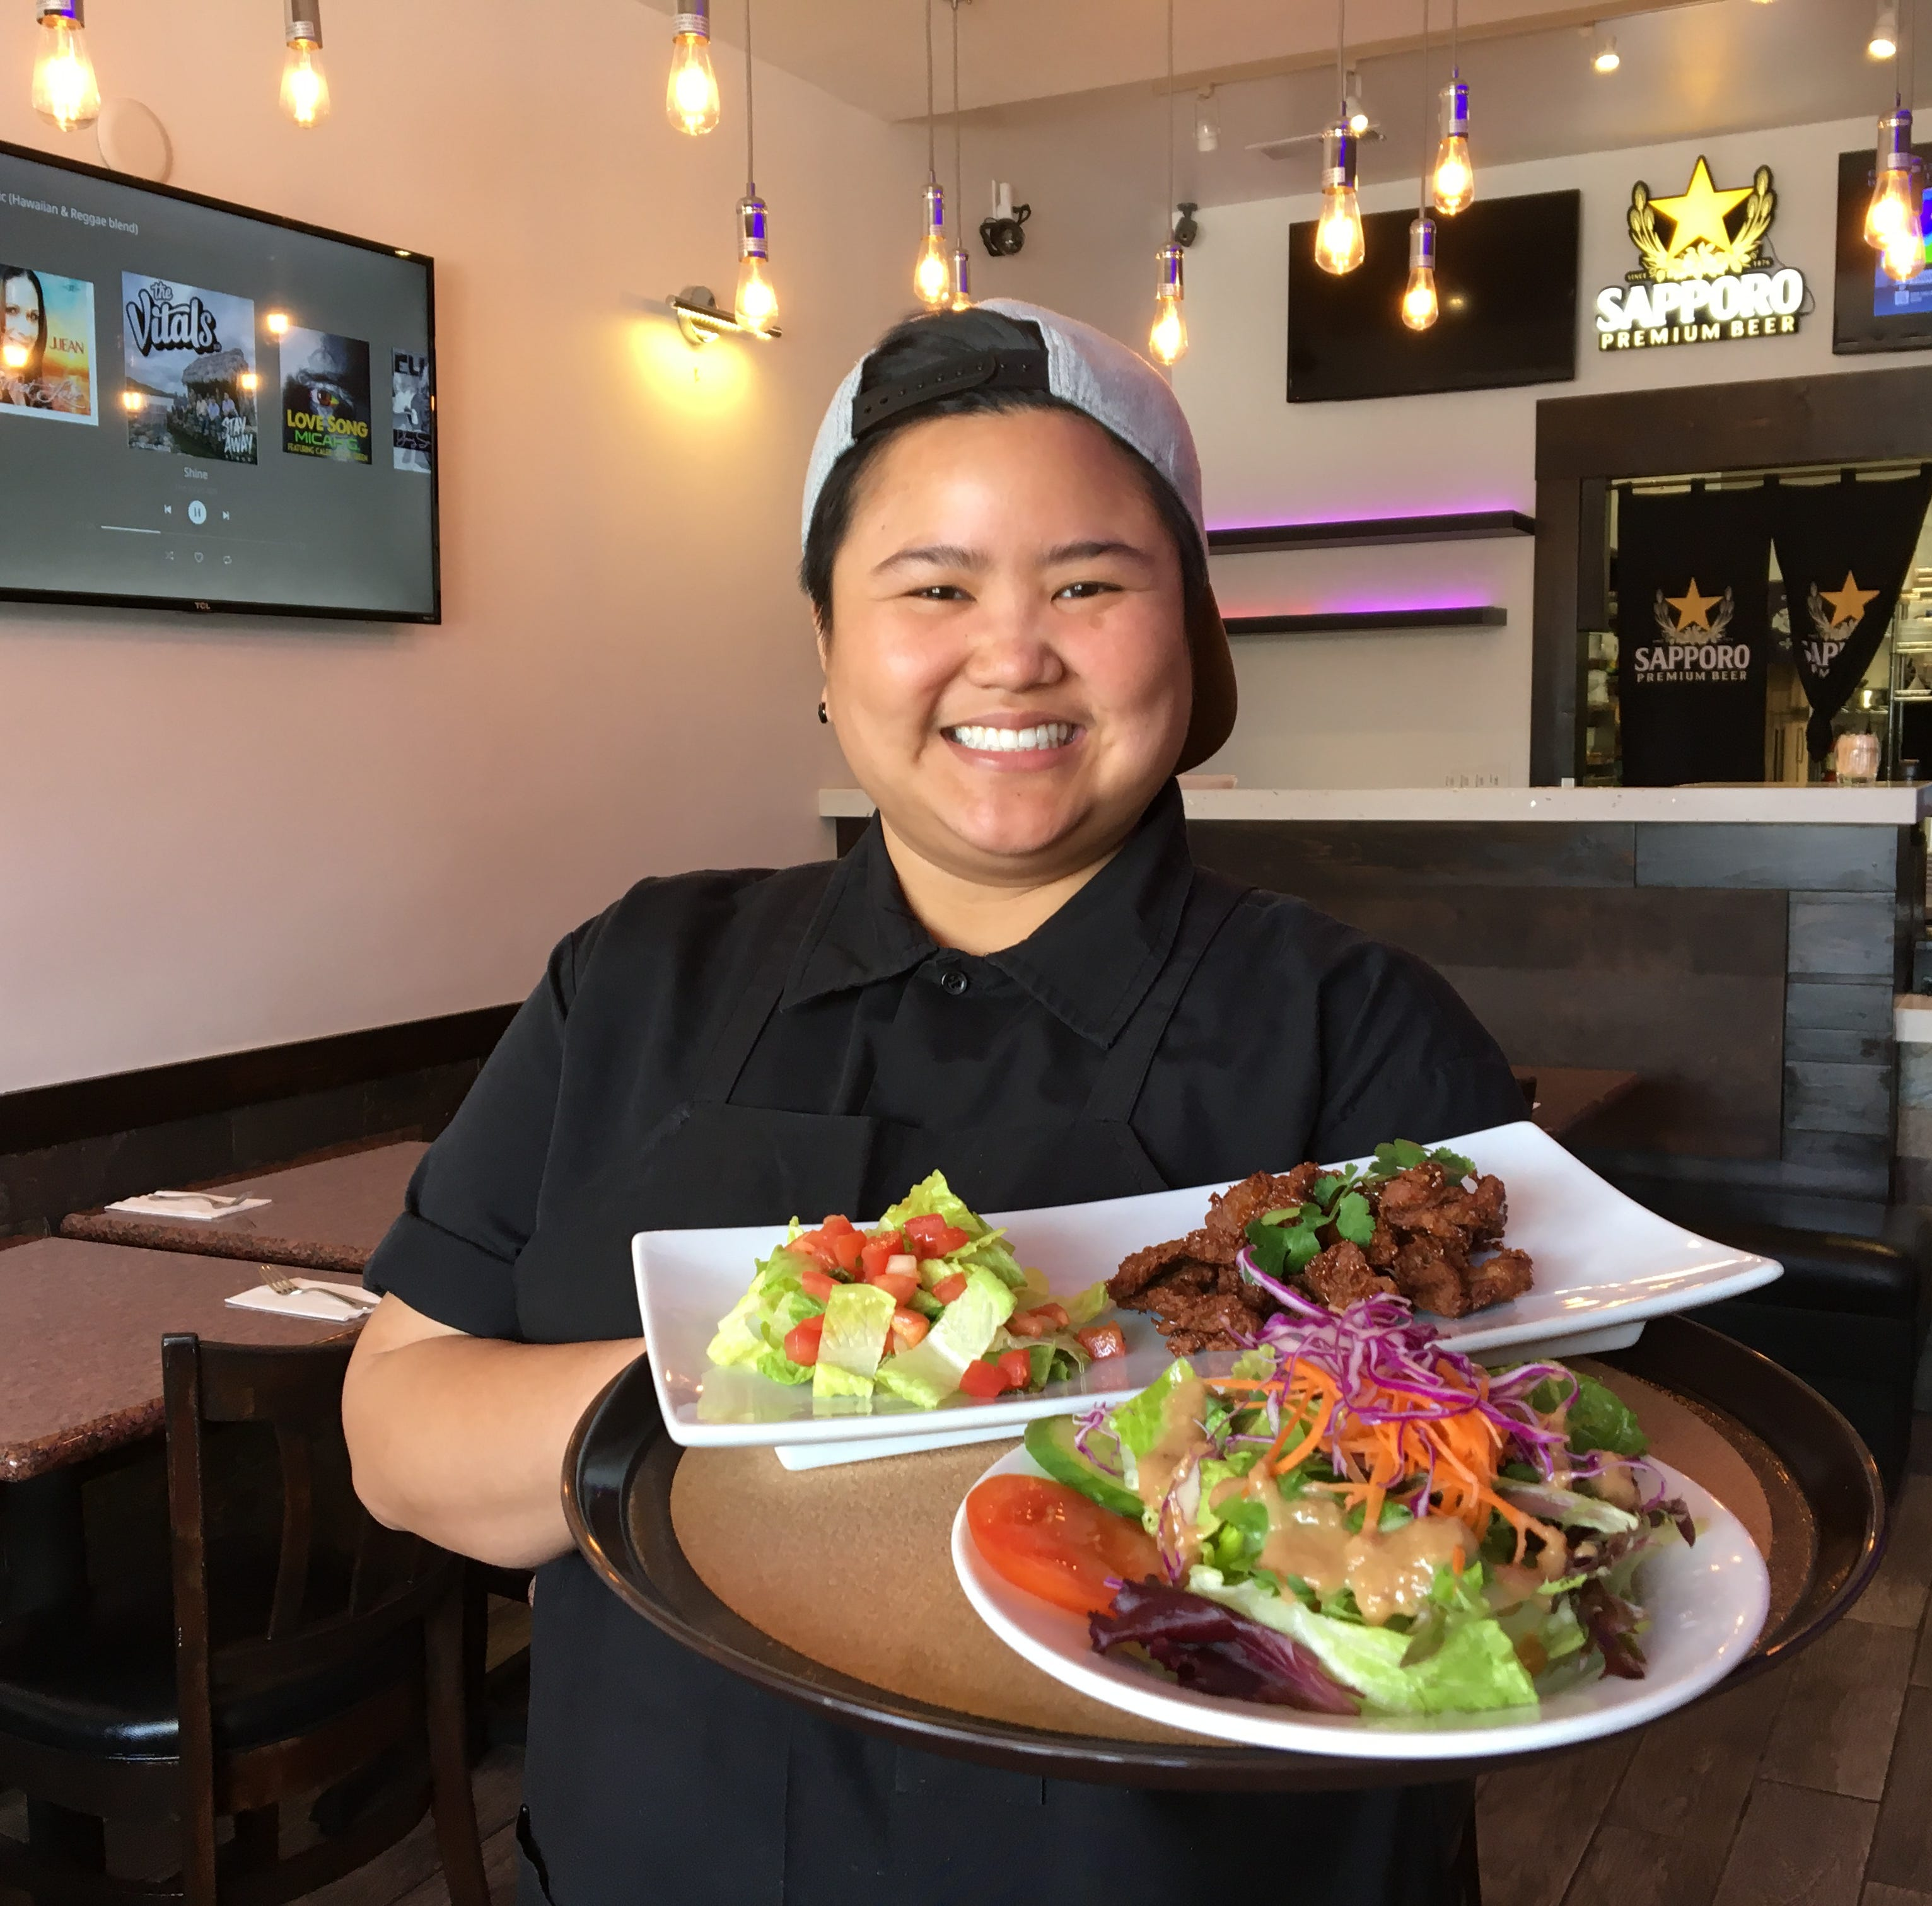 Open and shut: Newbury Park goes vegan with new cafe